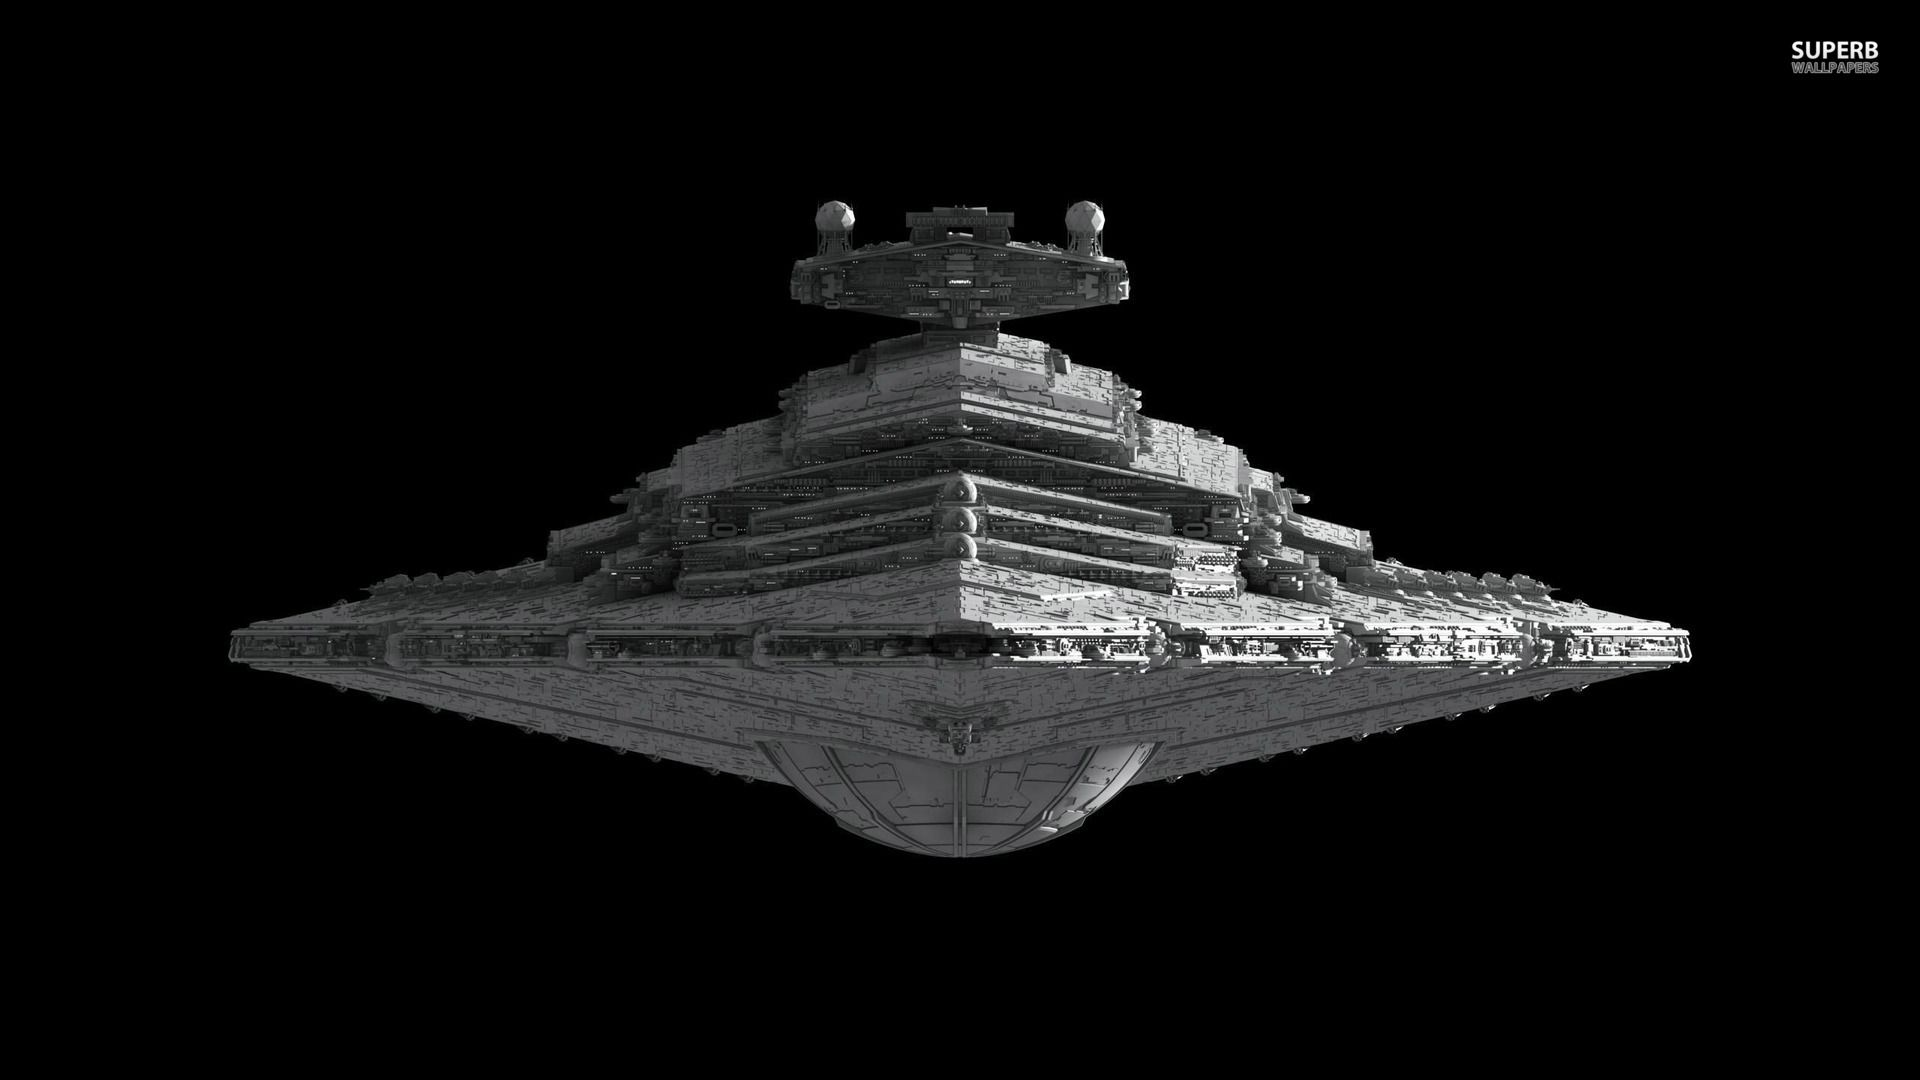 49 Star Wars Star Destroyer Wallpaper On Wallpapersafari